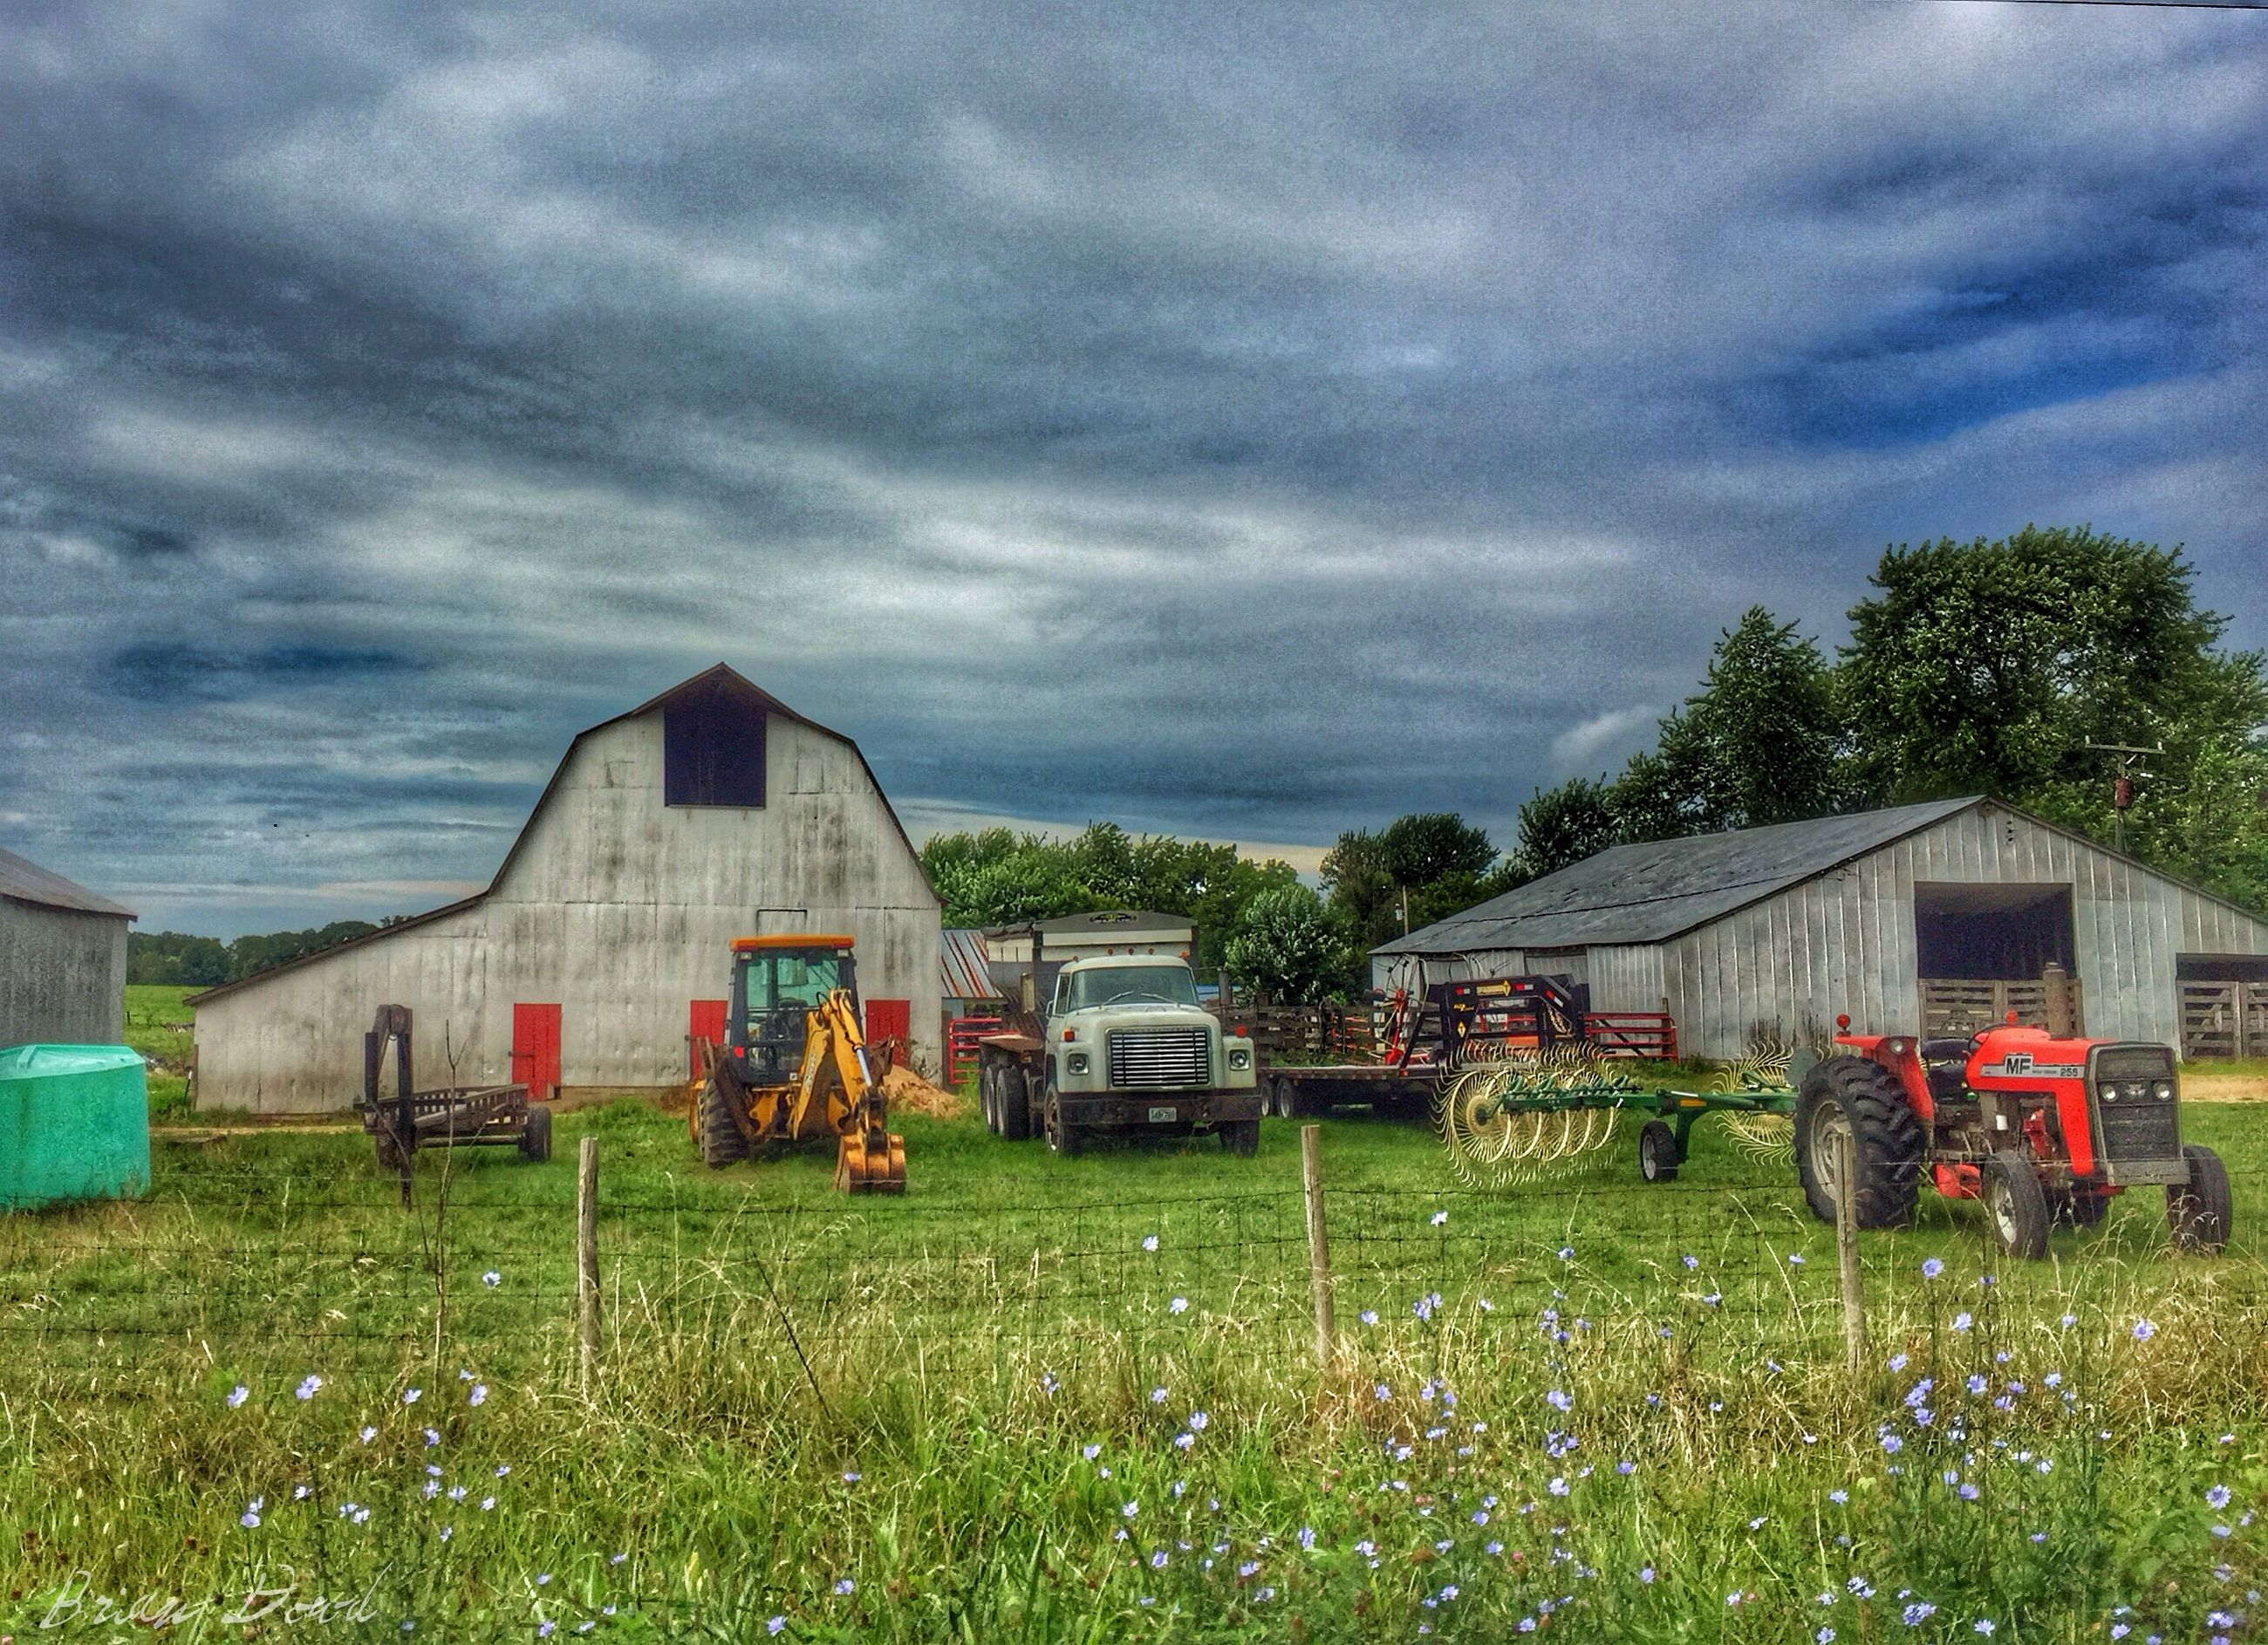 sky, grass, cloud - sky, field, cloudy, building exterior, built structure, architecture, house, cloud, rural scene, farm, agriculture, landscape, green color, nature, tree, growth, grassy, transportation